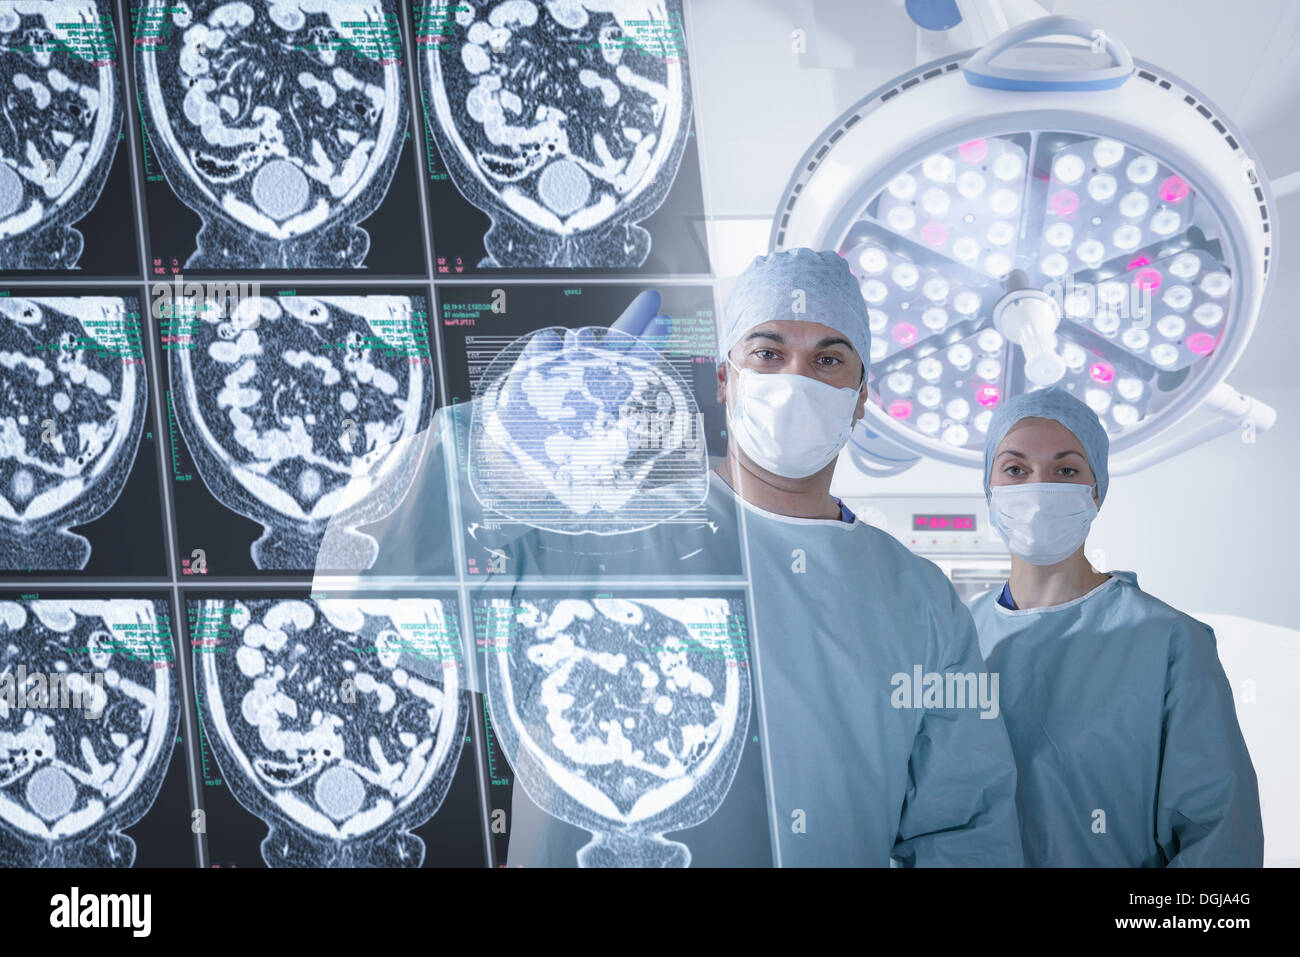 Surgeons discussing computed tomography (CT) scans in operating theatre - Stock Image